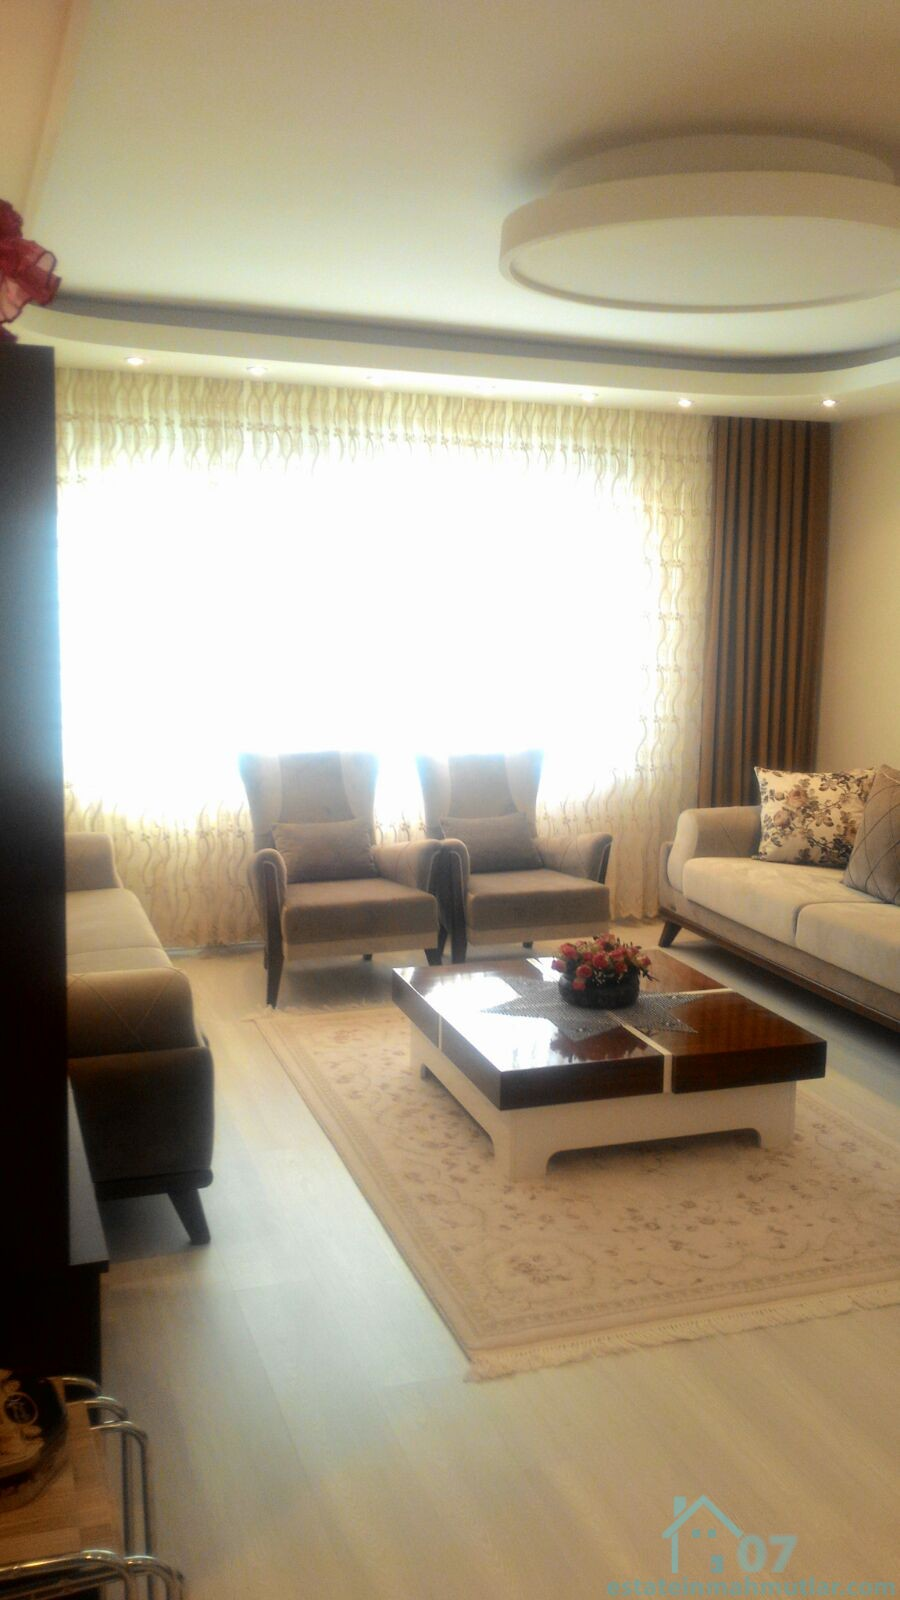 2 Years Old 2 Beautiful Apartments (3+1 & 1+1) on the same Title Deed on Sale